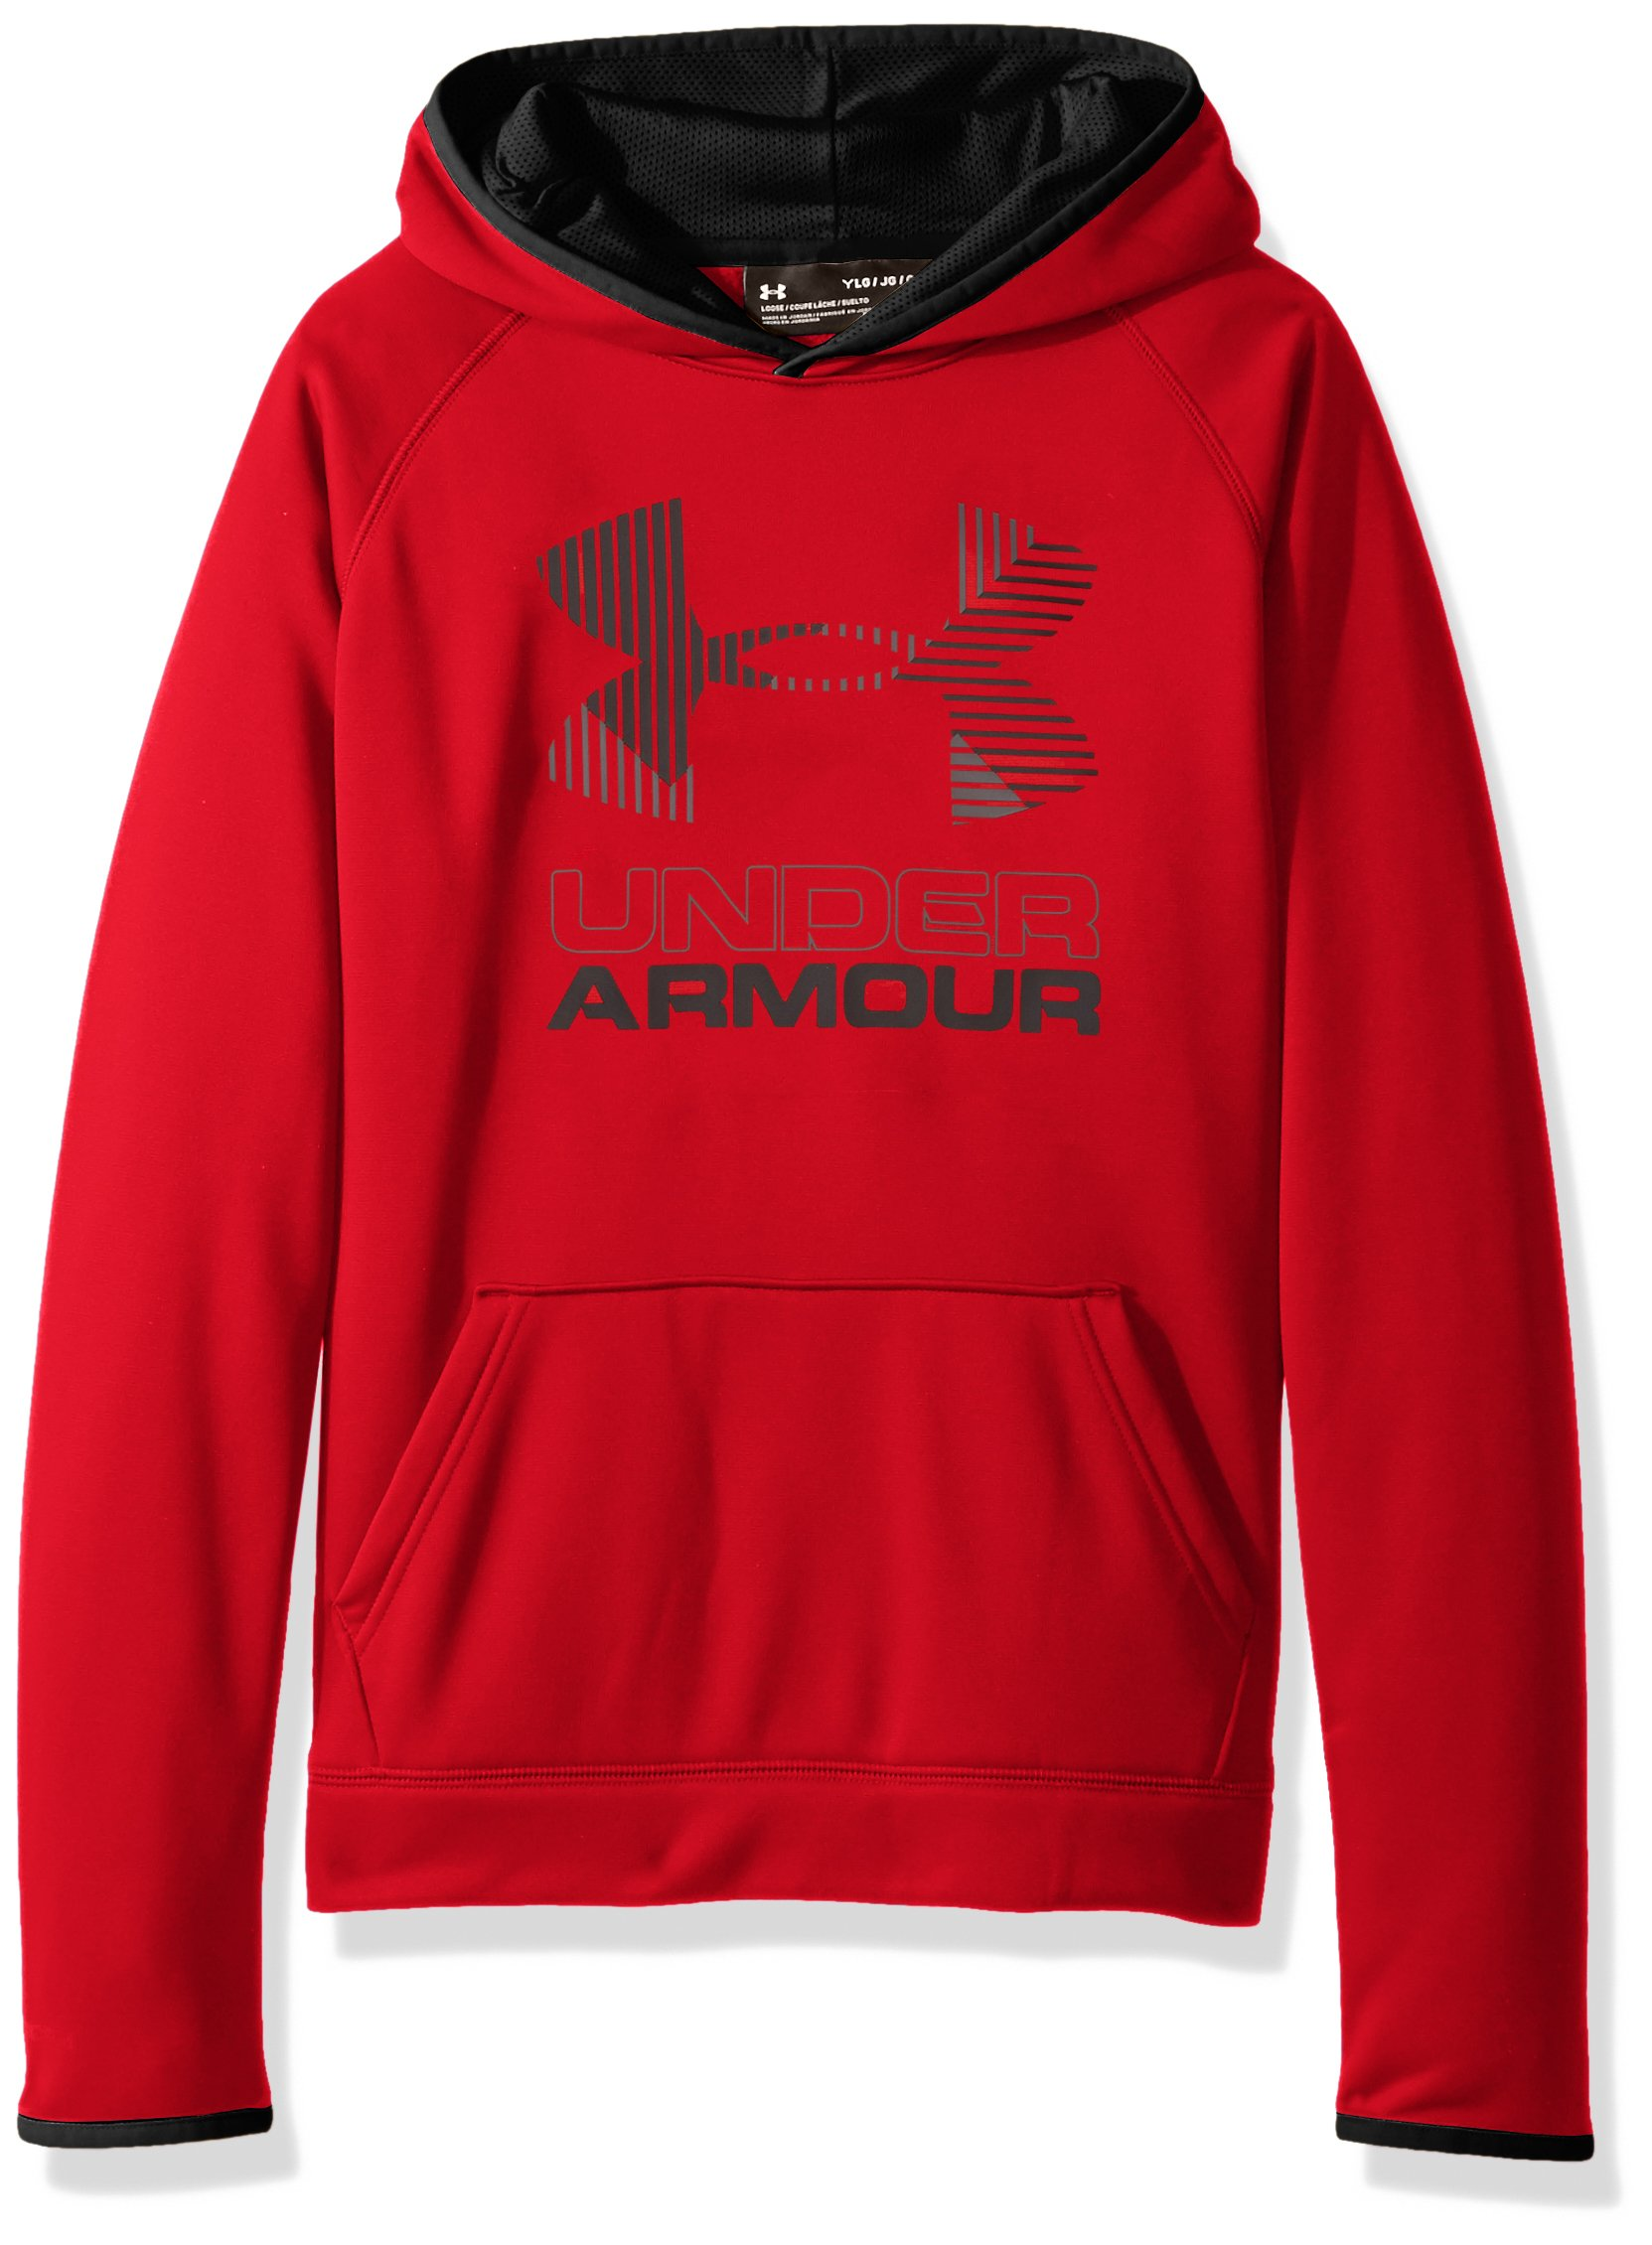 Under Armour Boys' Armour Fleece Solid Big Logo Hoodie, Red /Graphite, Youth X-Large by Under Armour